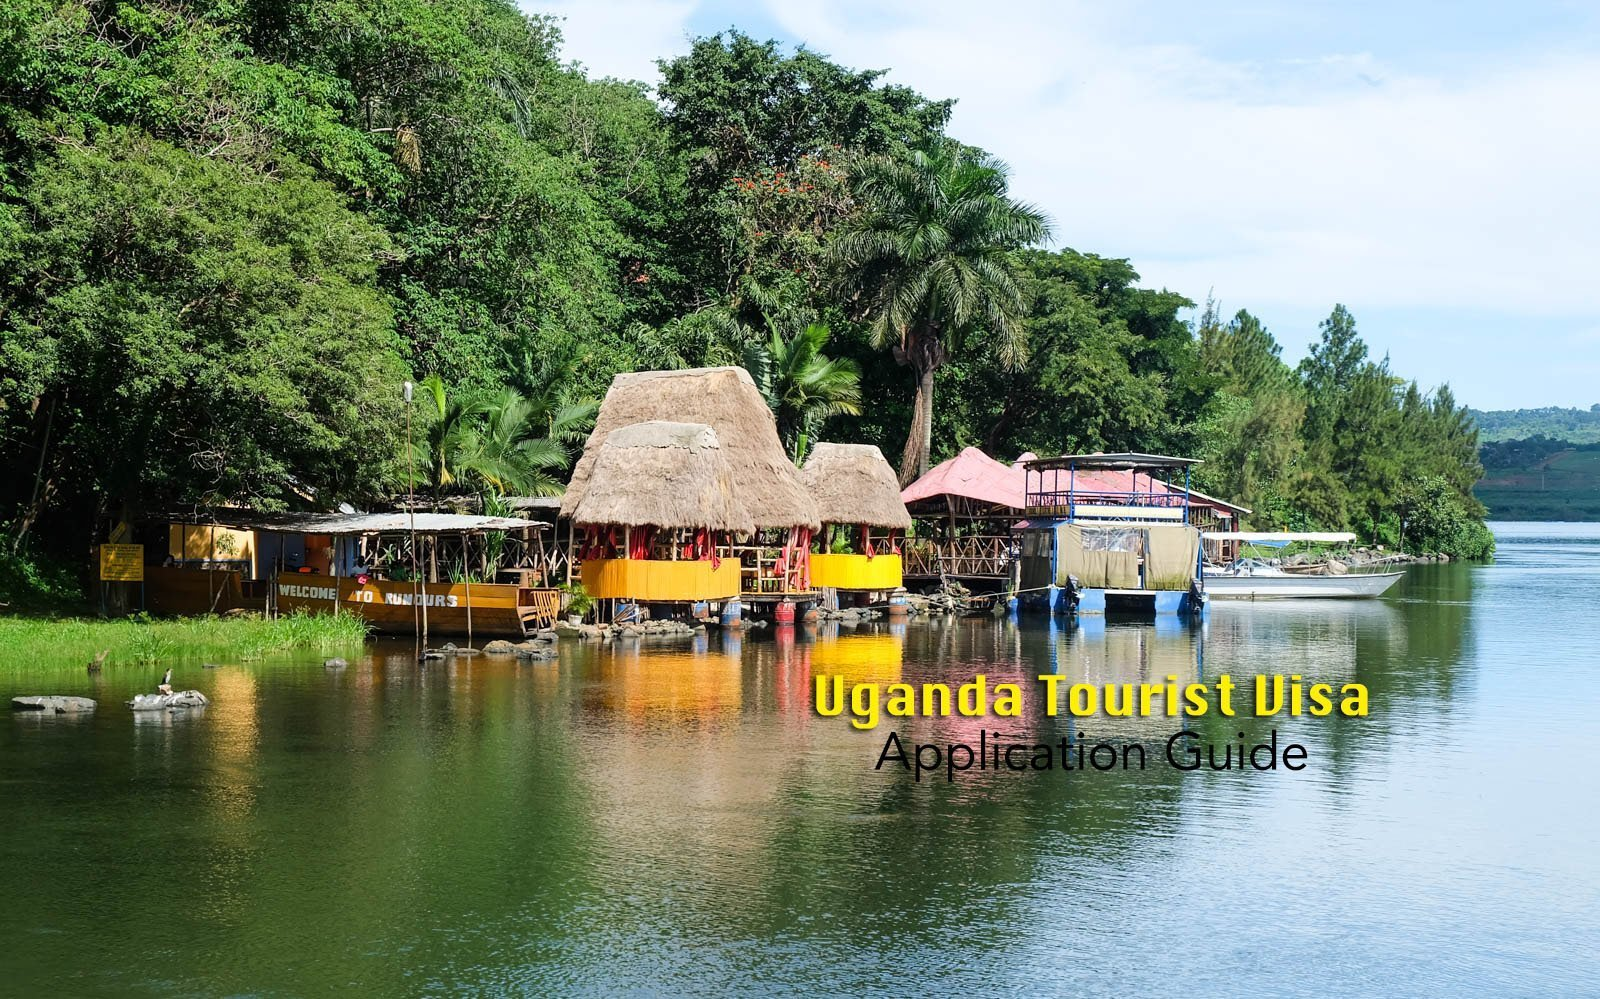 Uganda Tourist Visa Application Guide